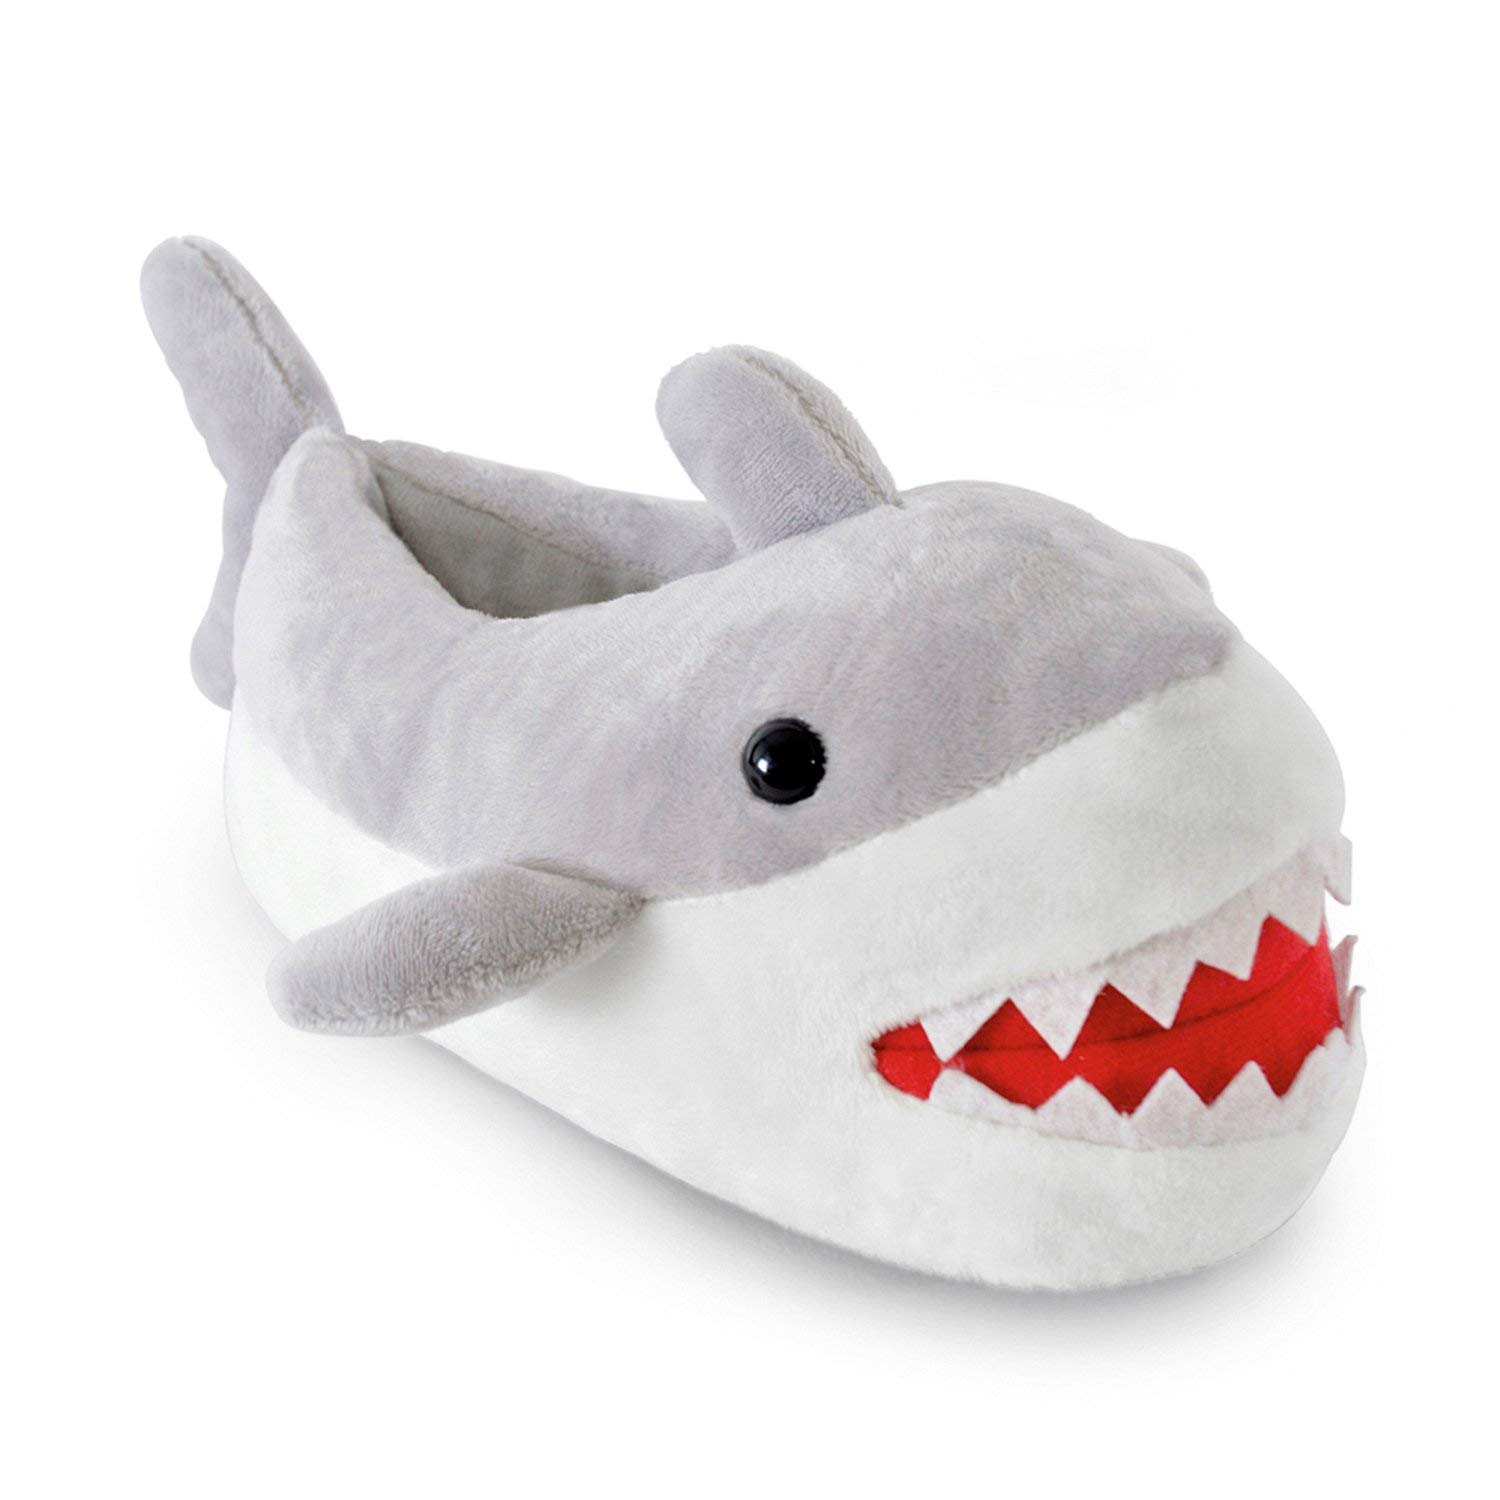 0be33c1ae Get Quotations · Childrens/Kids/Boys Novelty Shark Boot Slippers with Shark  Teeth Detail, Various Sizes